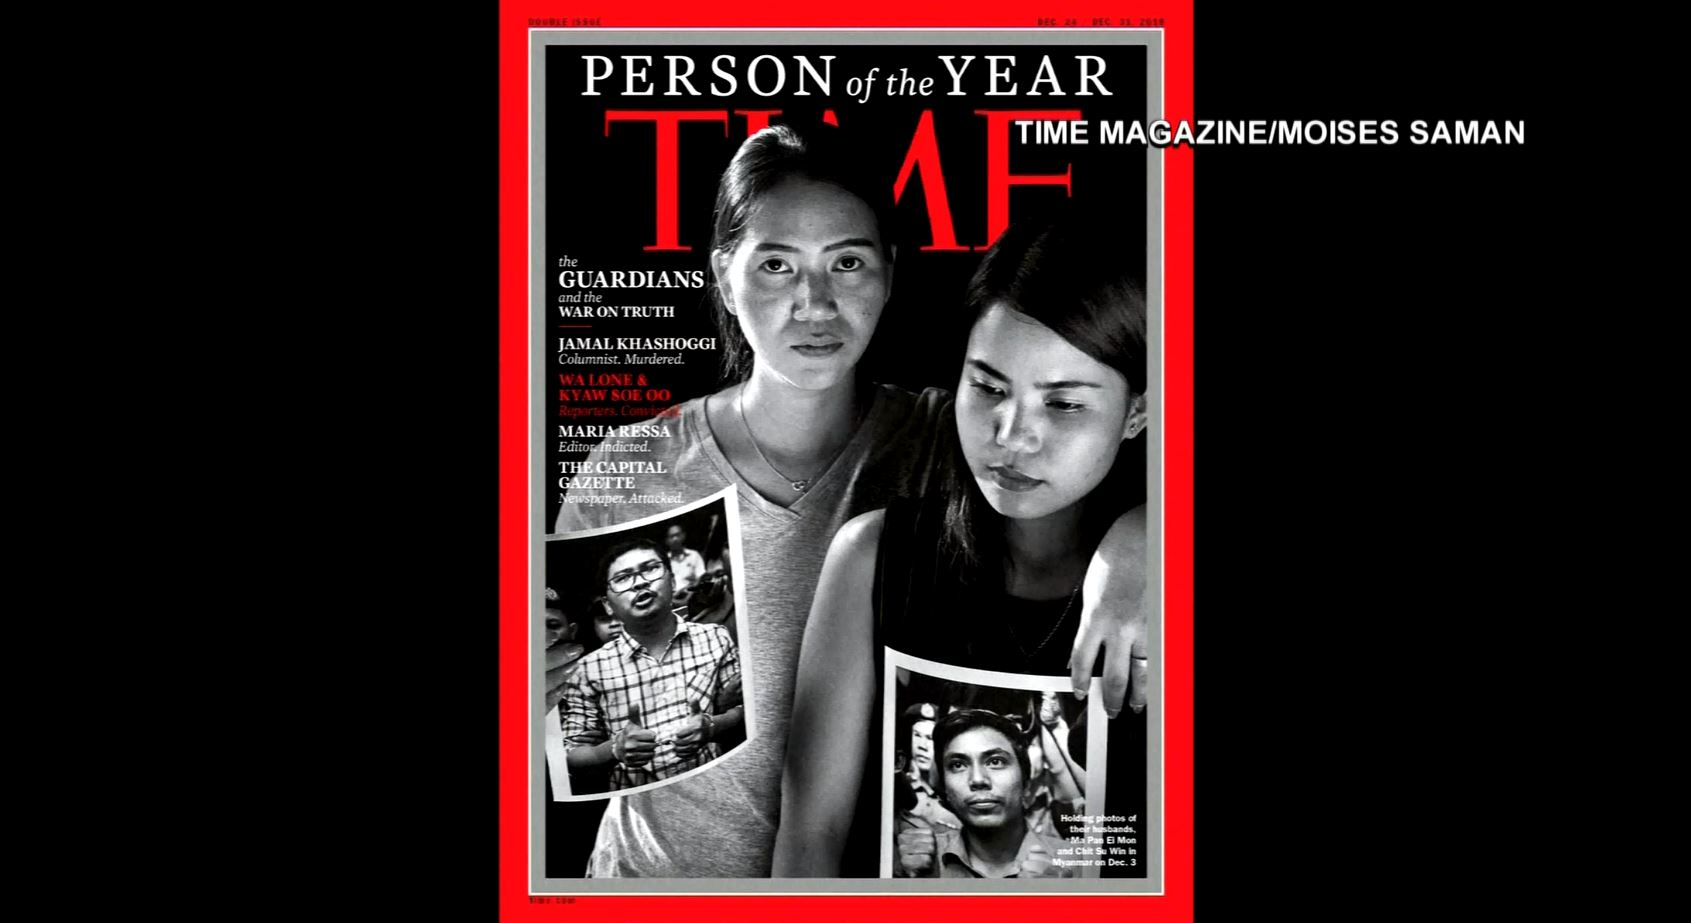 TIME PERSON OF THE YEAR 2018 5_1544561531120.JPG.jpg